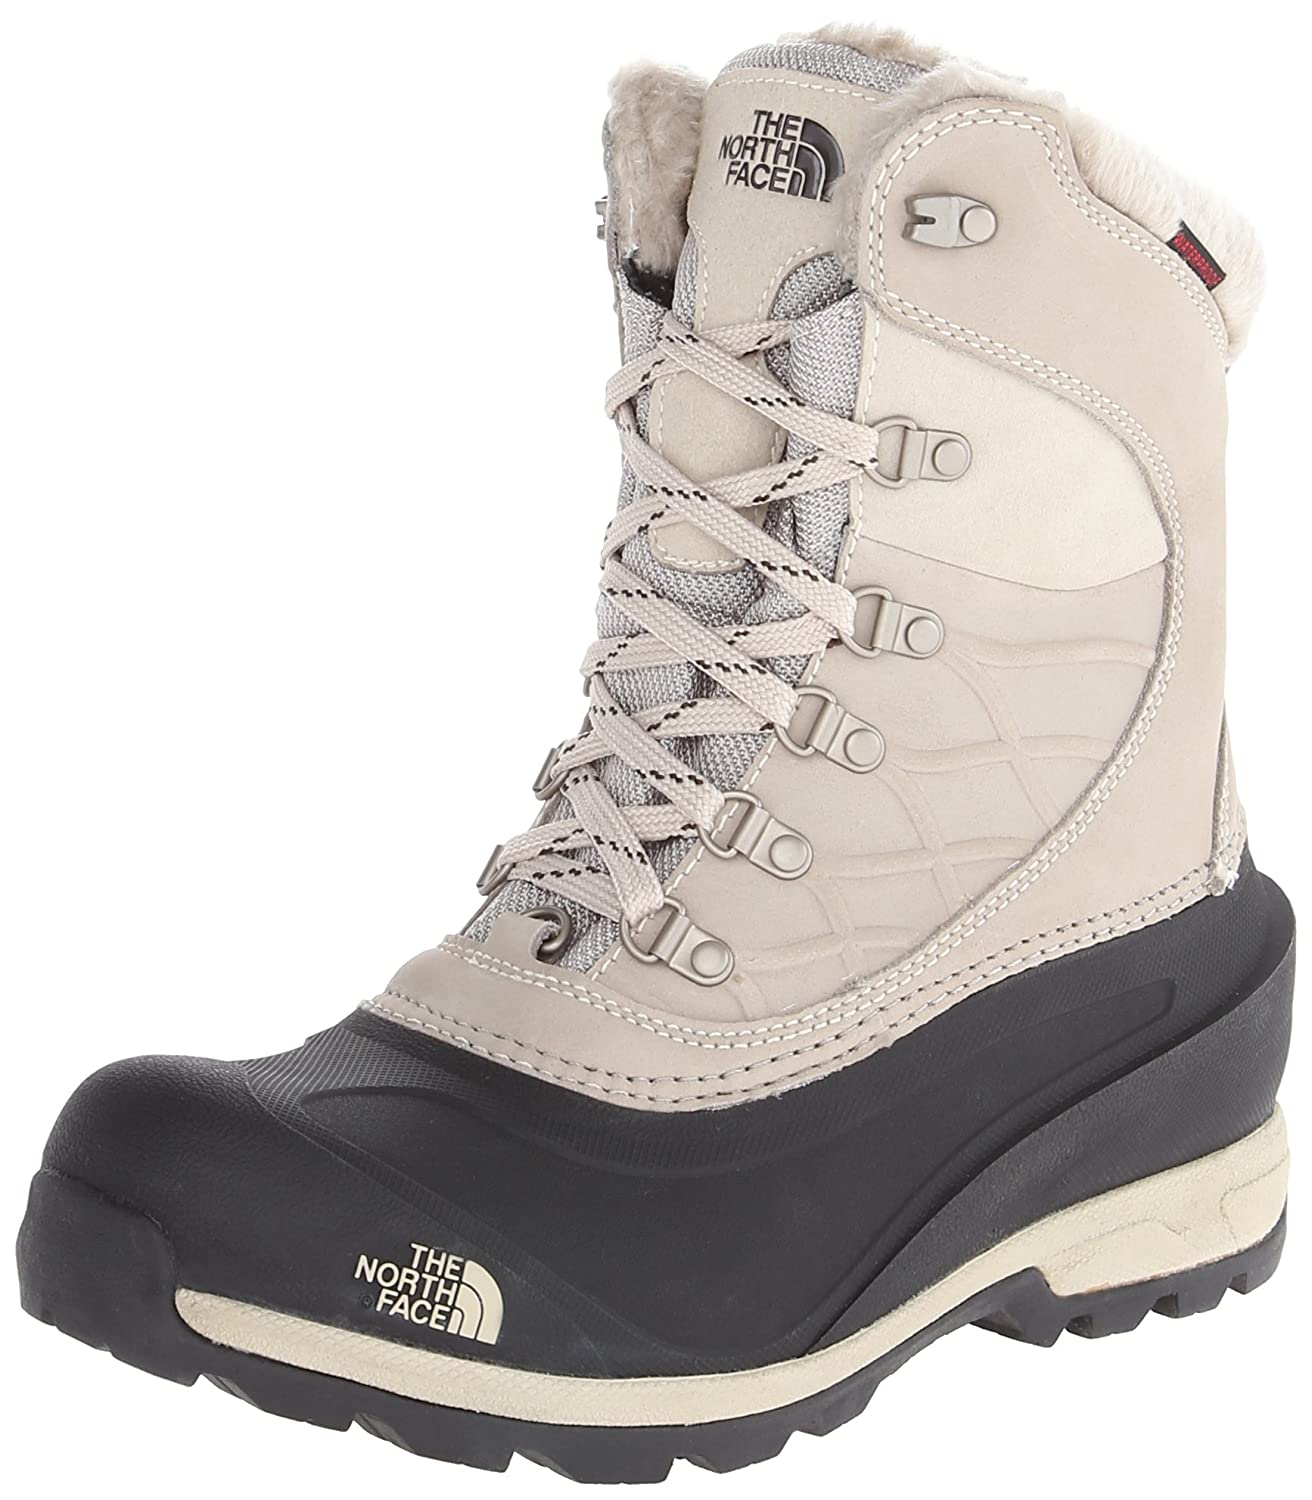 The North Face Womens Chilkat 400 B00HWCFFYK 7.5 B(M) US|Simply Taupe Brown/Tnf Black